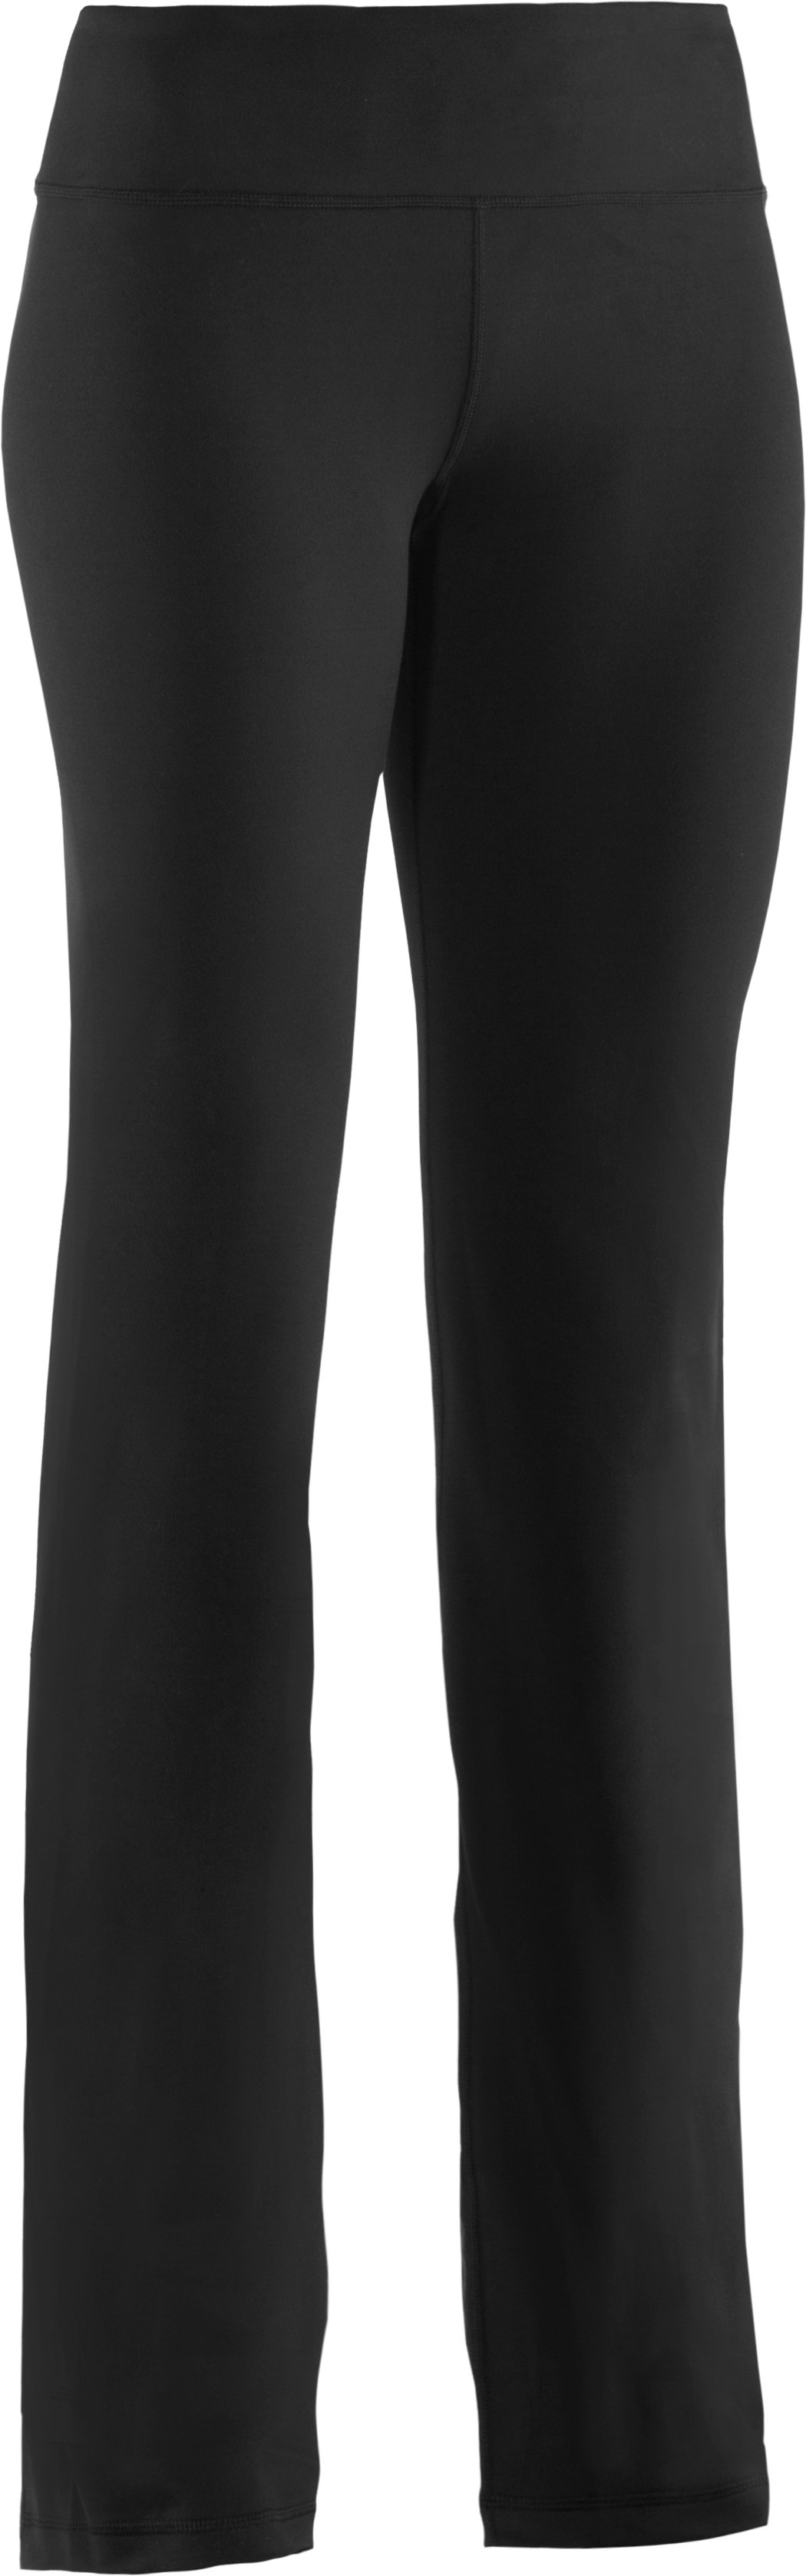 "Women's UA Perfect Pant - 35.5"", Black"